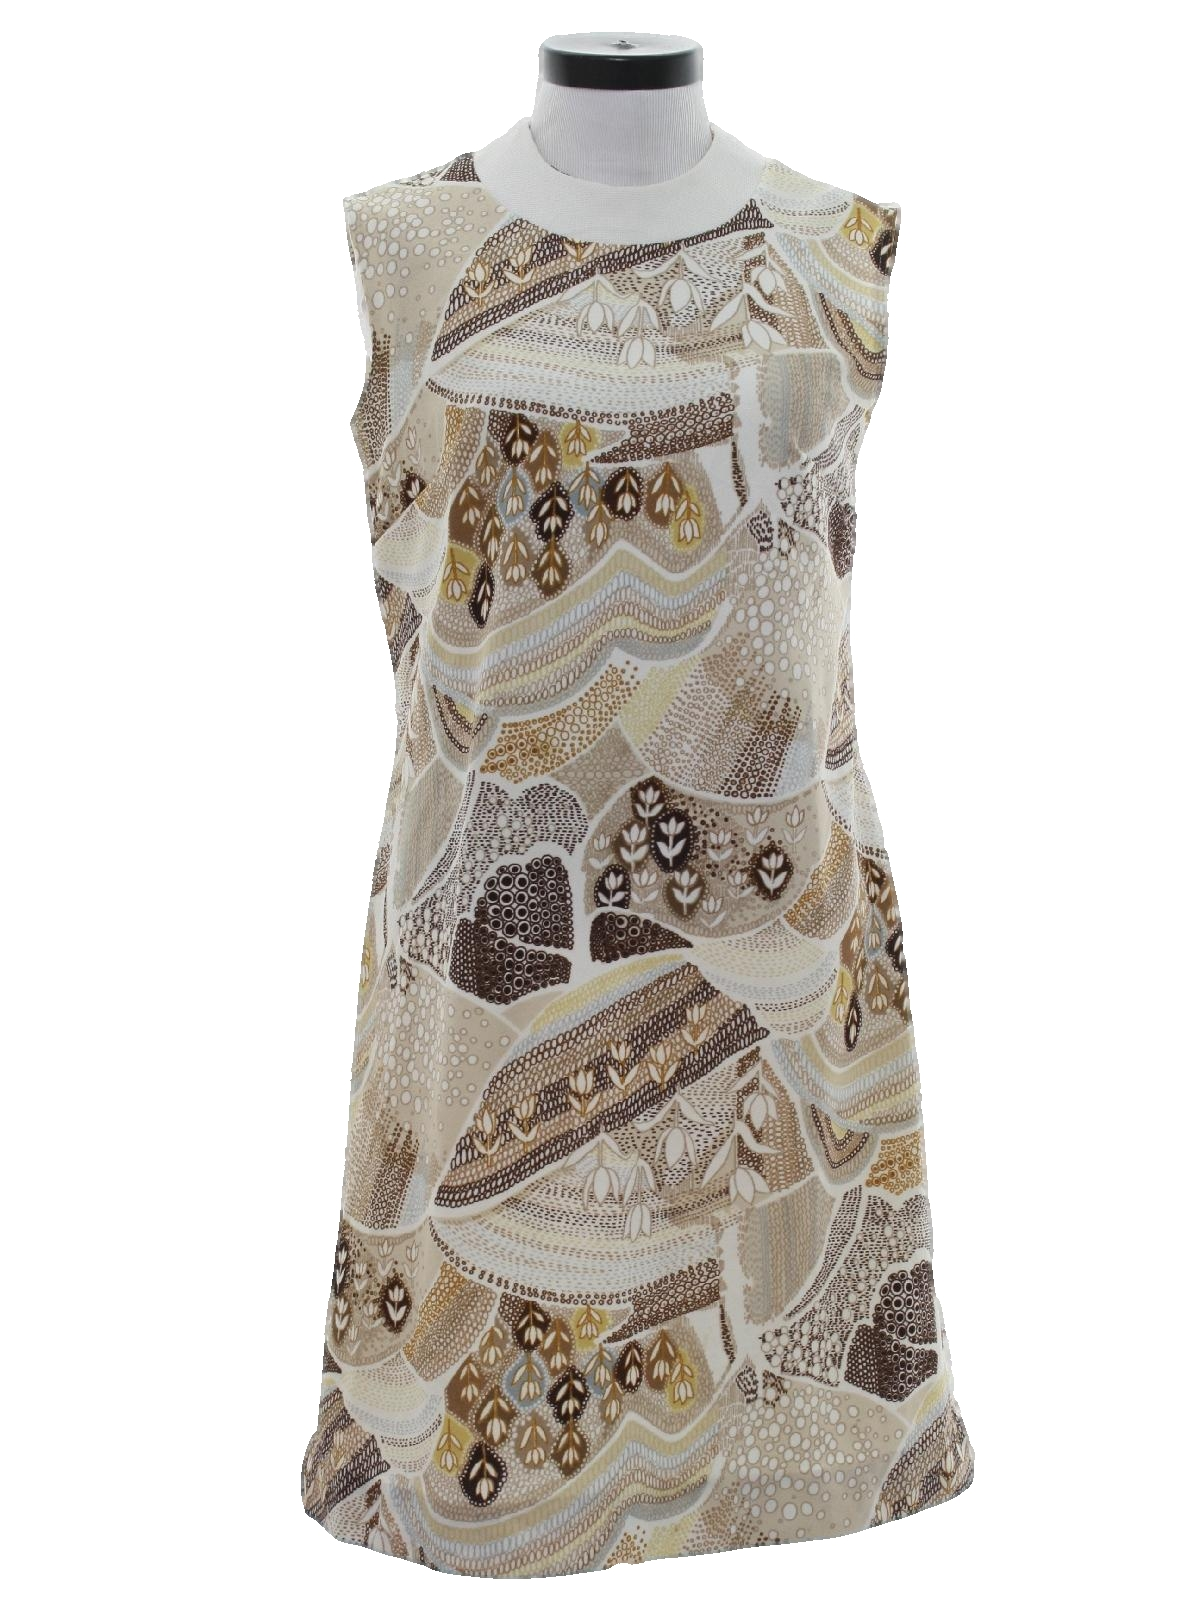 3c26d614c3ad7 Liberty Circle 1960s Vintage Dress: Late 60s or early 70s -Liberty Circle-  Womens taupe multi-color polyester knit slight a-line sleeveless dress  having a ...